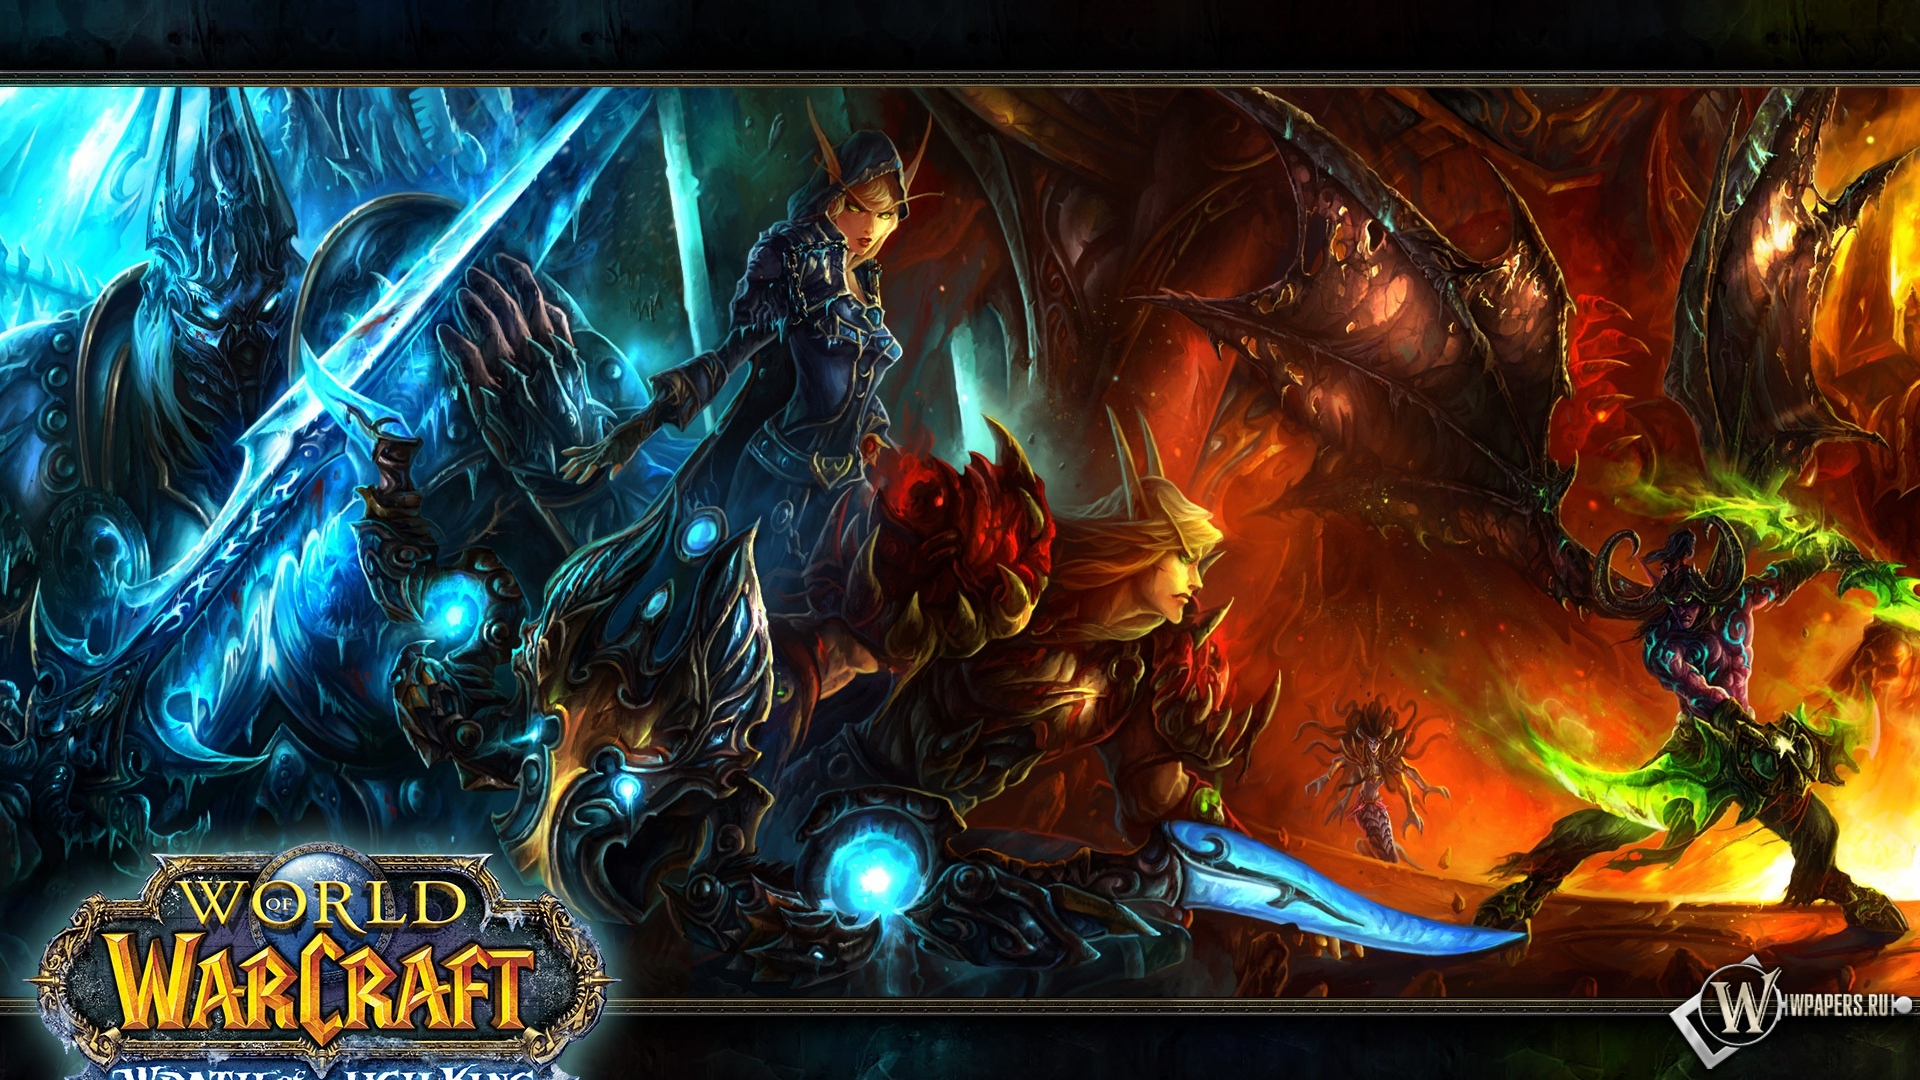 World of warcraft 1920x1080